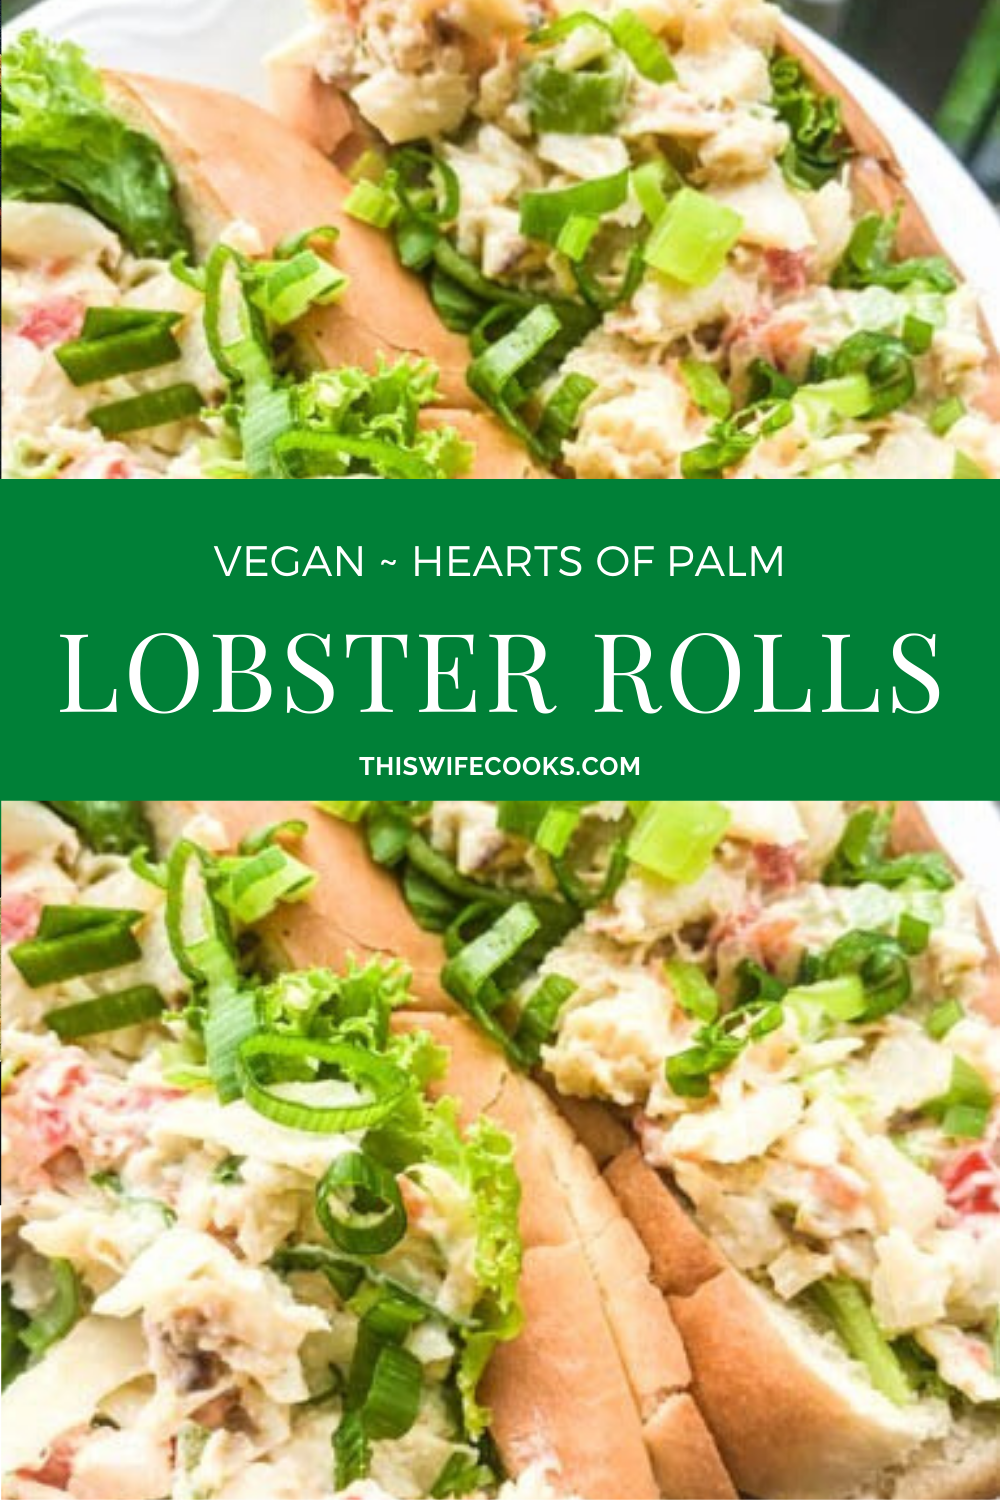 Hearts of Palm Lobster-Style Rolls - Super easy to make and bursting with all the flavor of a traditional lobster roll! #veganseafood #thiswifecooksrecipes #vegansandwichrecipes #veganlobsterroll #veganrecipes #heartsofpalm via @thiswifecooks